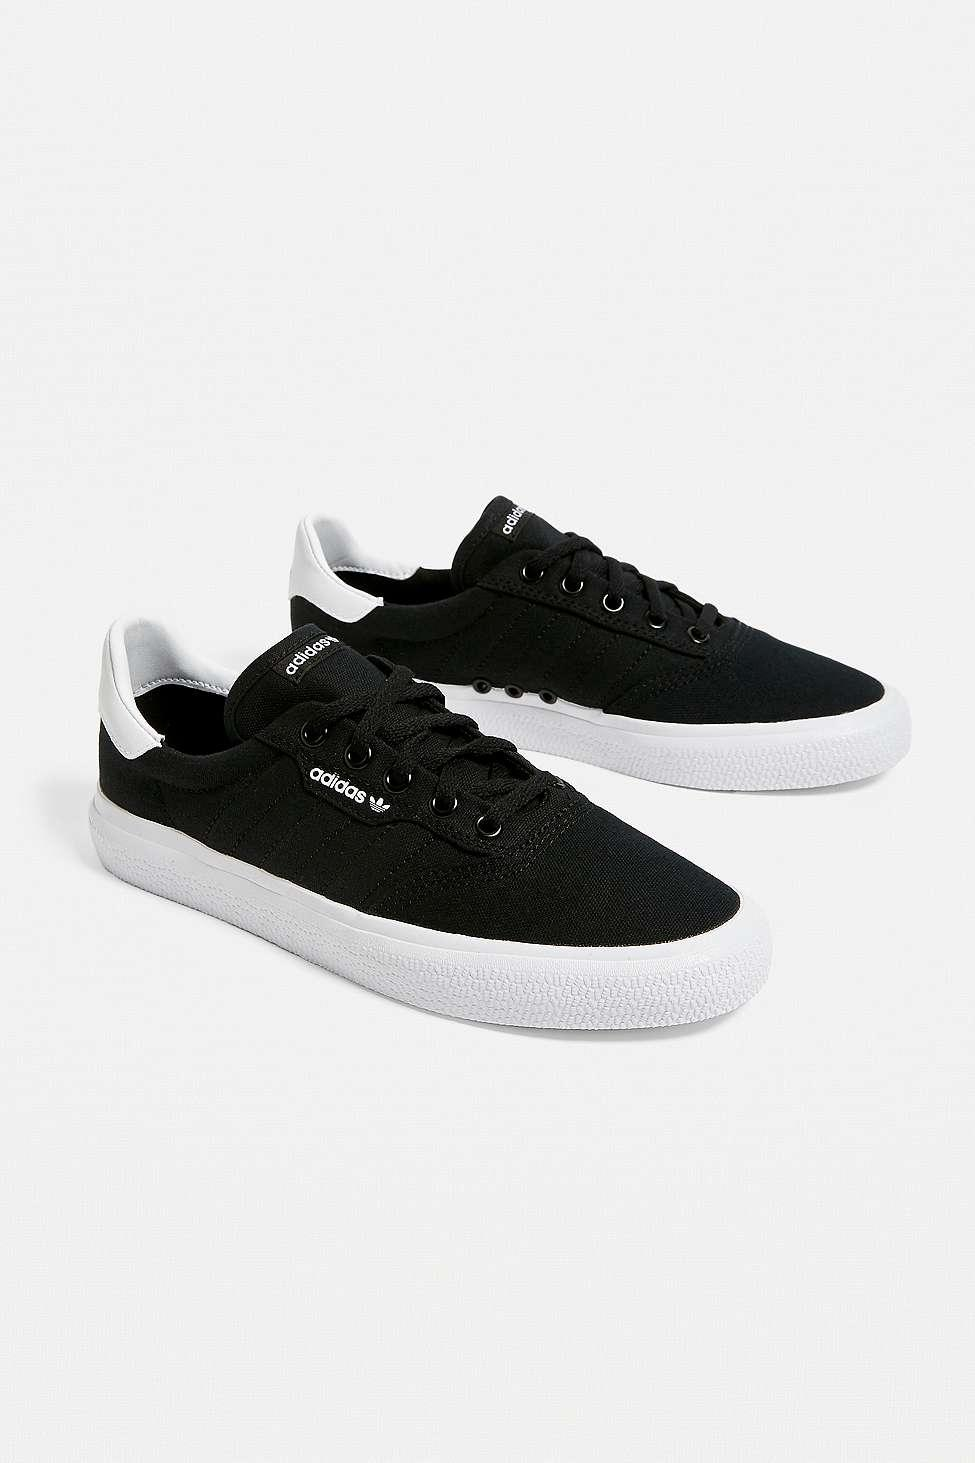 b2327d068b600 adidas Originals Black 3mc Skate Trainers in Black - Lyst